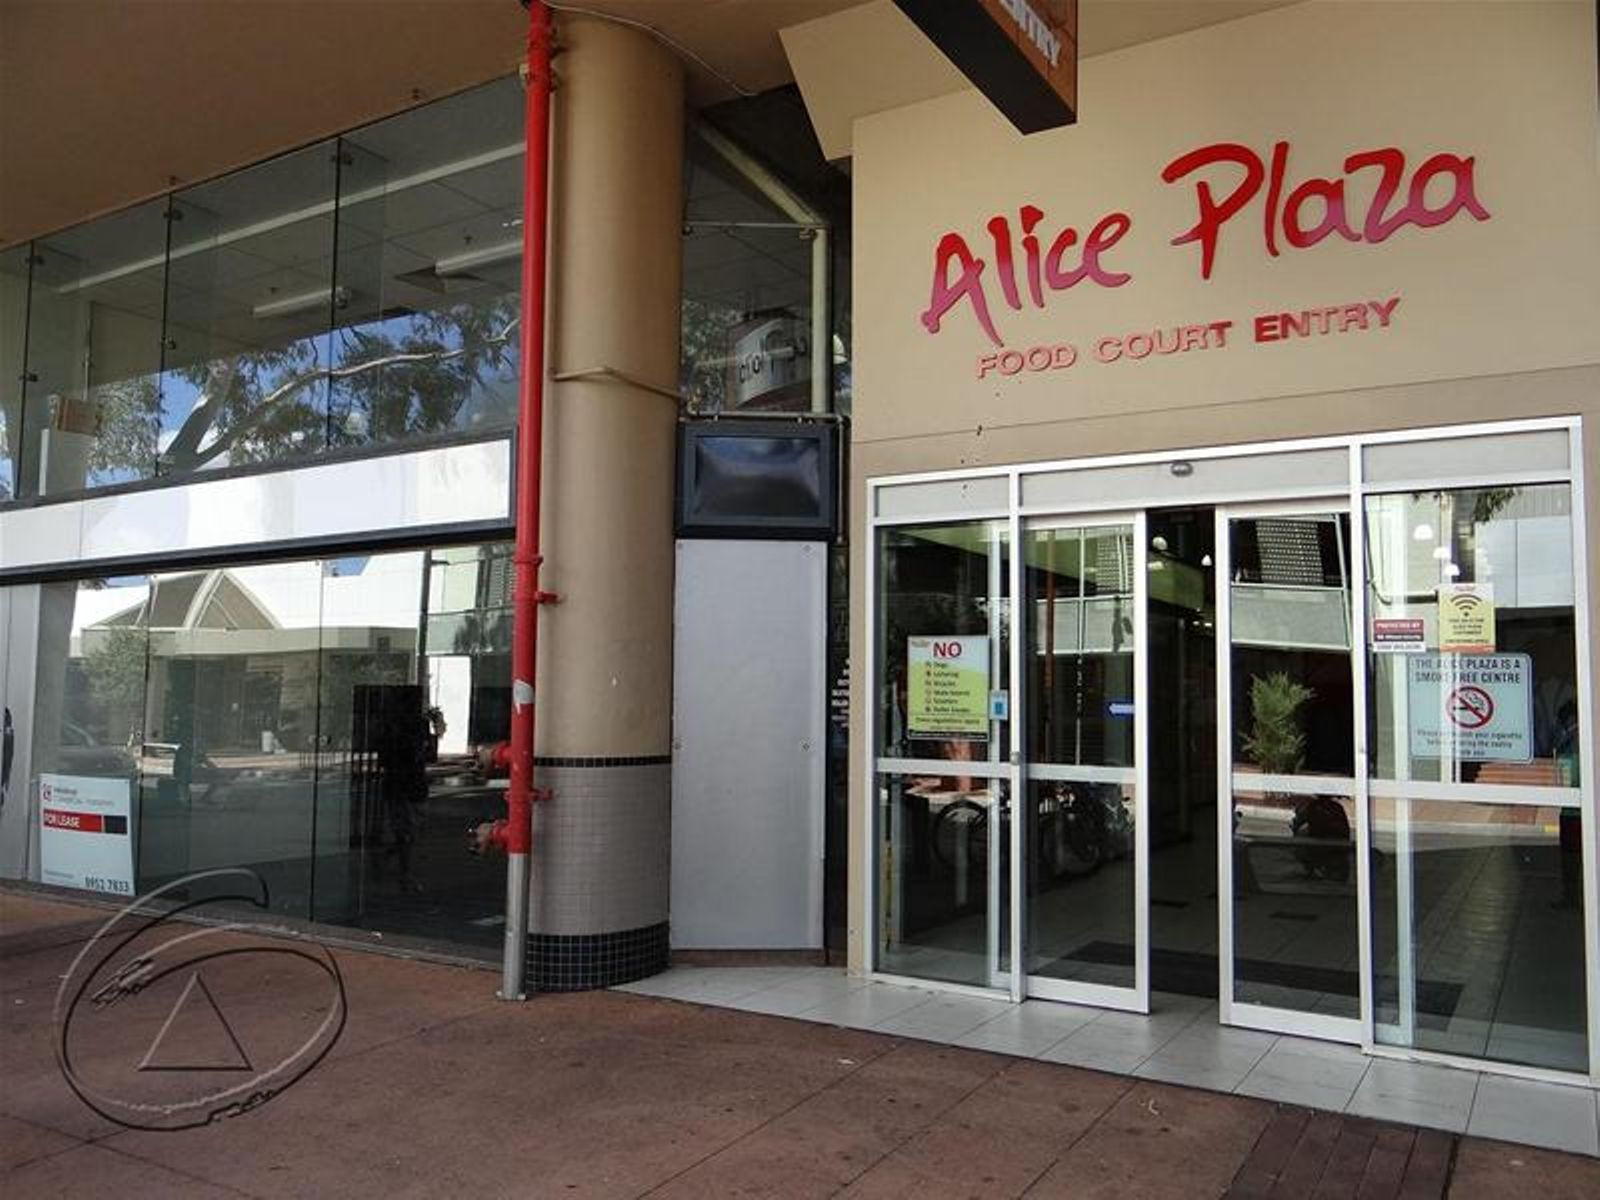 1 Alice Plaza, Alice Springs, NT 0870